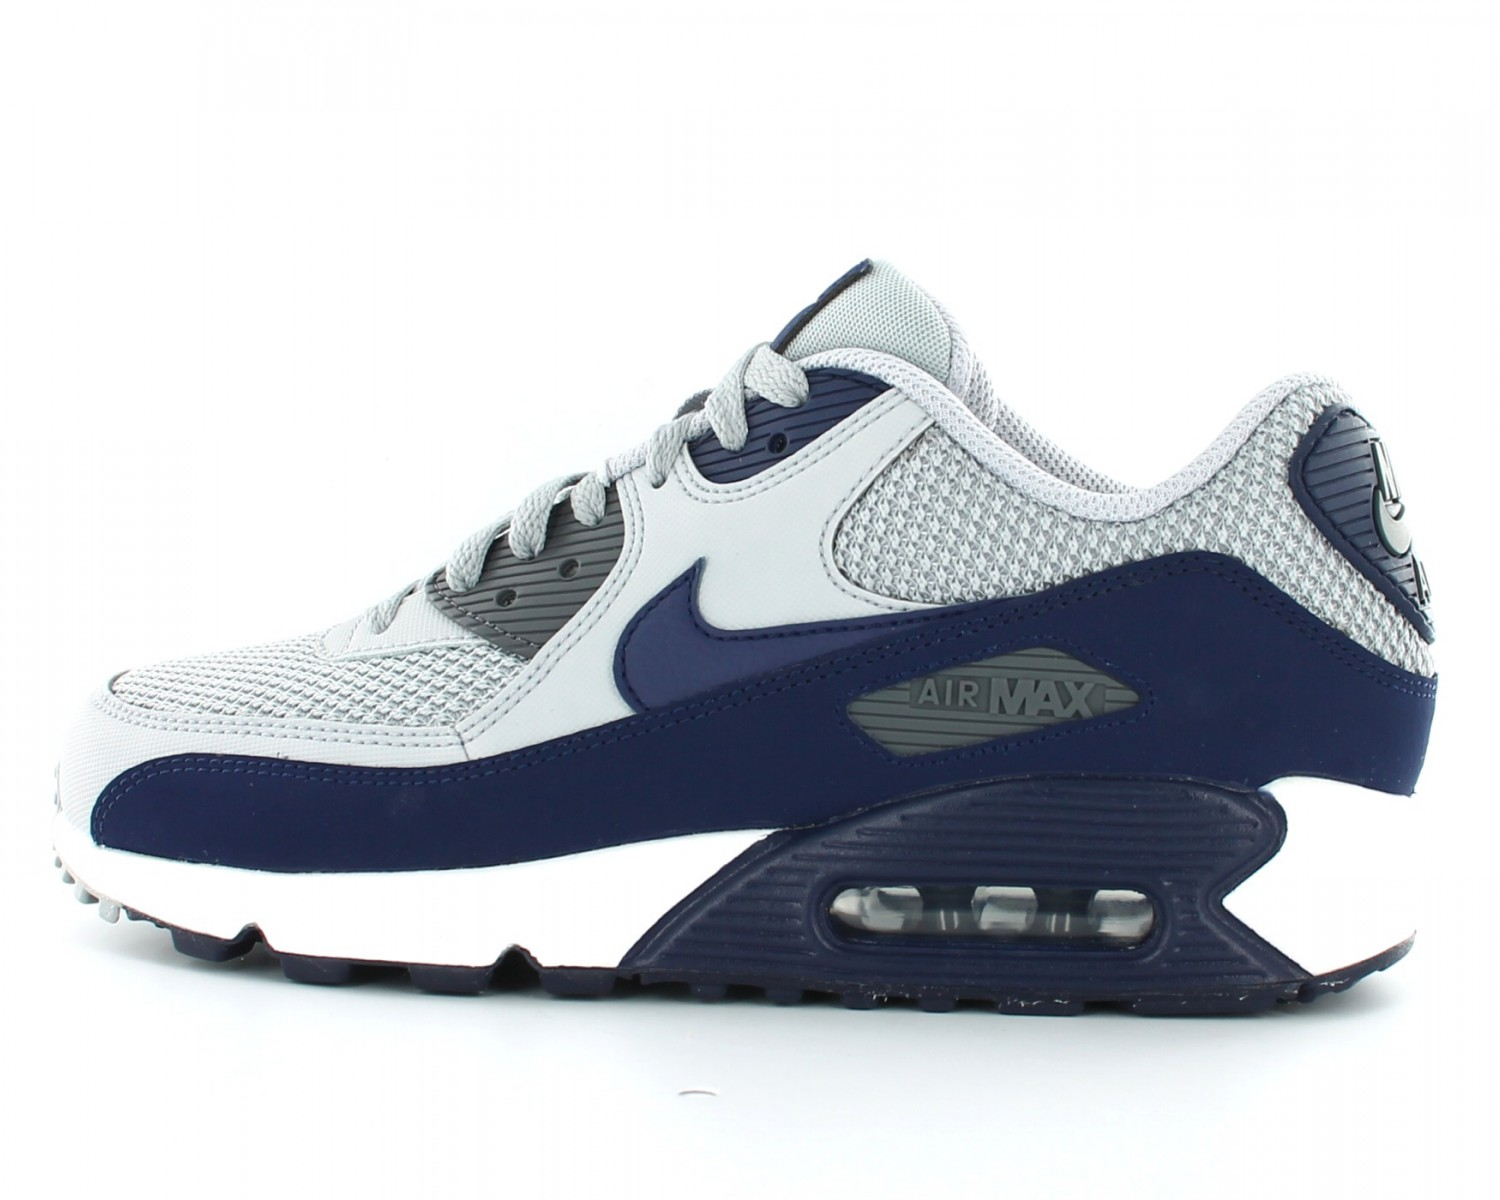 best service 67e7d ef547 ... low price nike air max 90 essential gris bleu marine beb10 876f4 ...